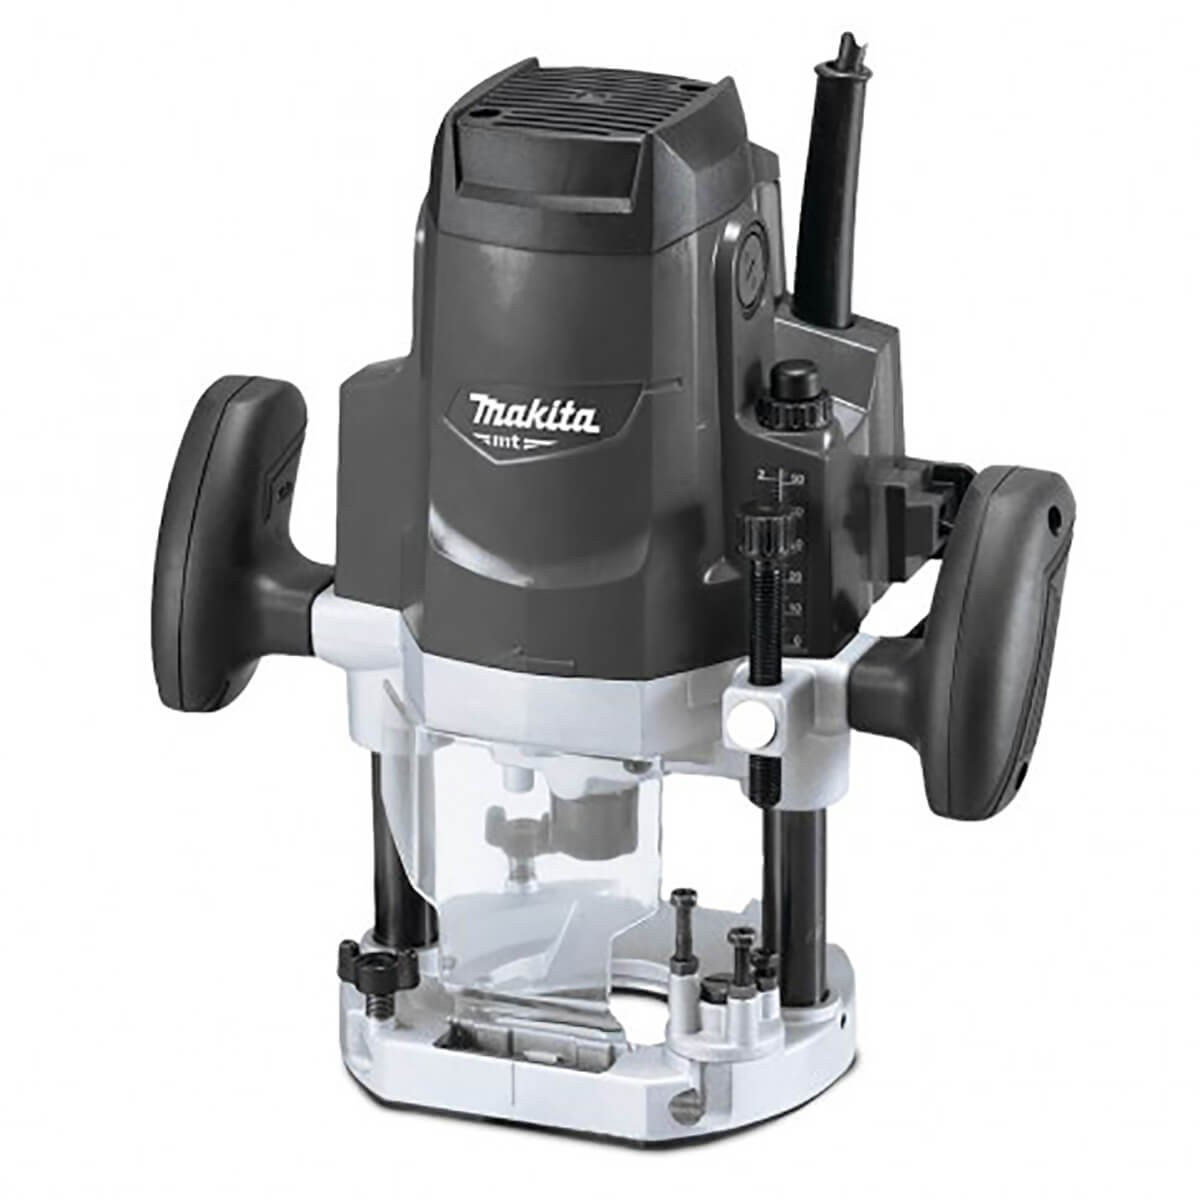 Makita MT Series M3600G Router Plunge Fixed base Router Compact router